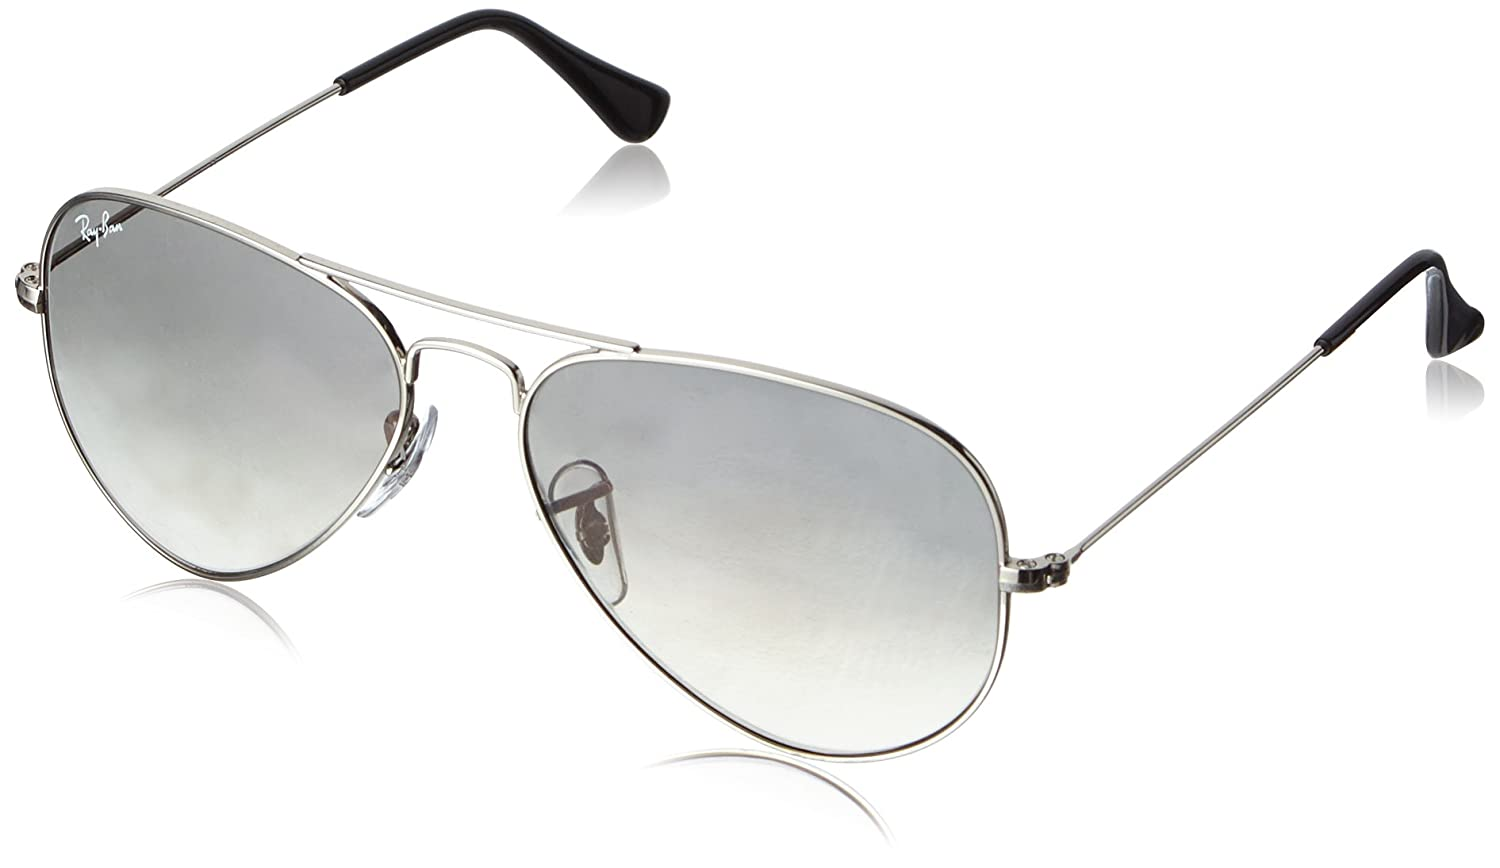 ray ban glass cover  amazon: ray ban 0rb3025 aviator metal non polarized sunglasses, silver/ crystal grey gradient, 55mm: ray ban: clothing